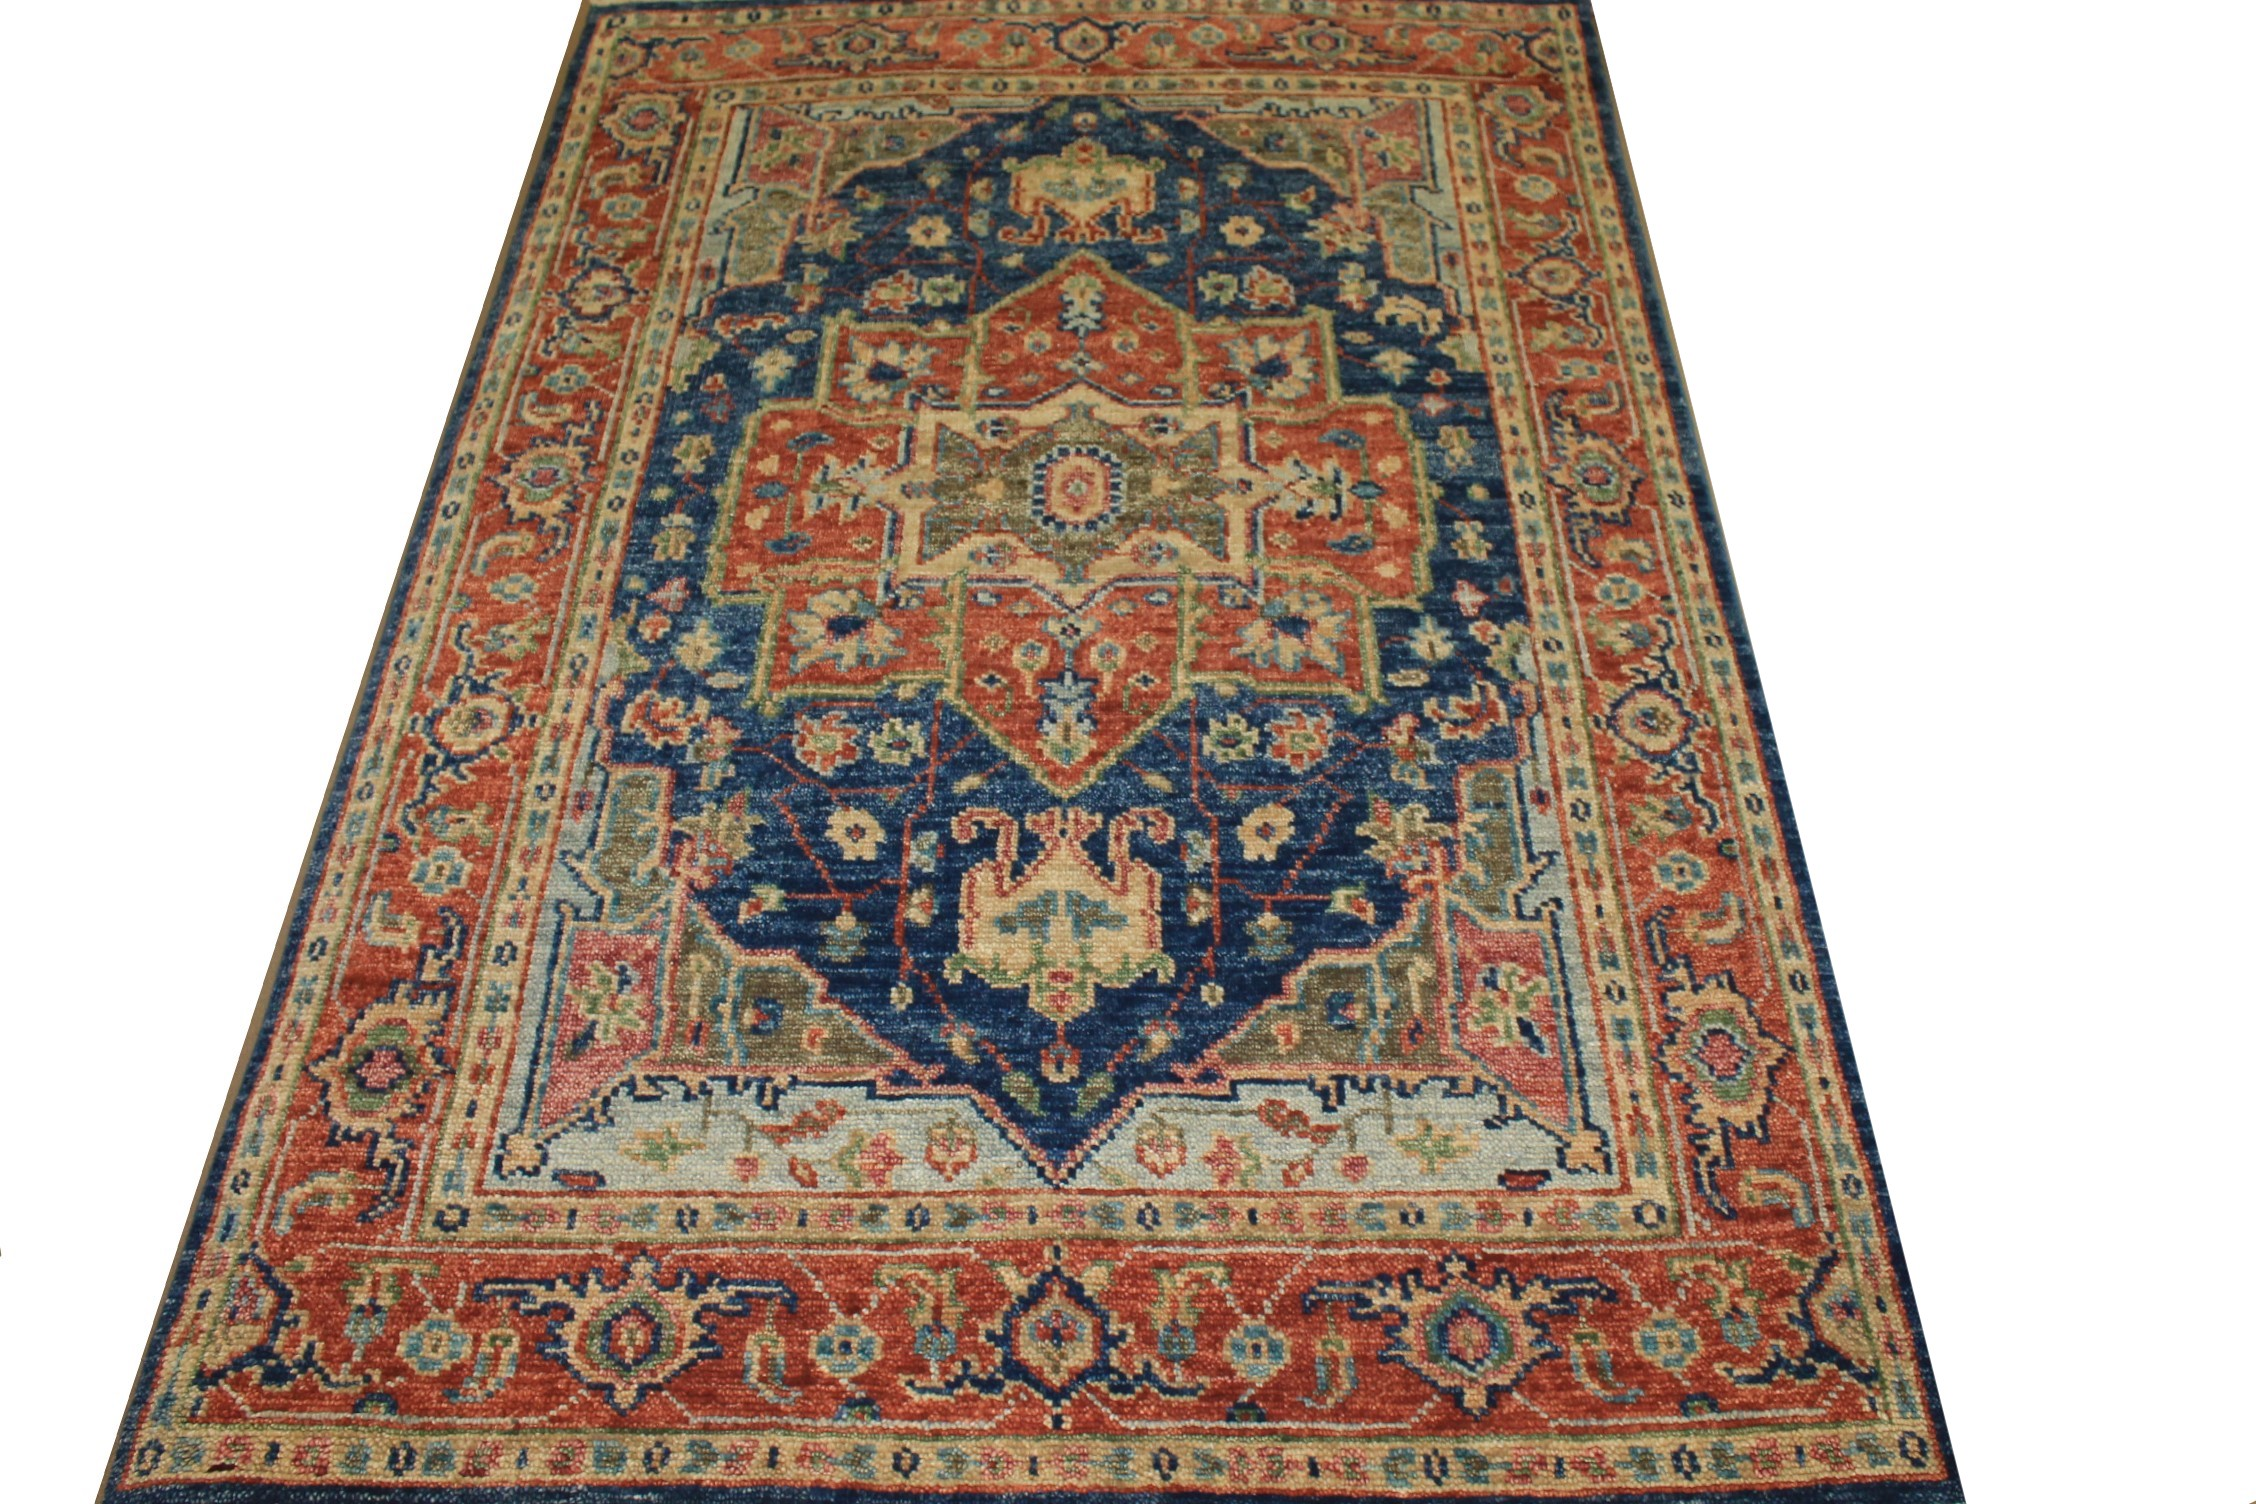 6x9 Oushak Hand Knotted Wool Area Rug - MR024239